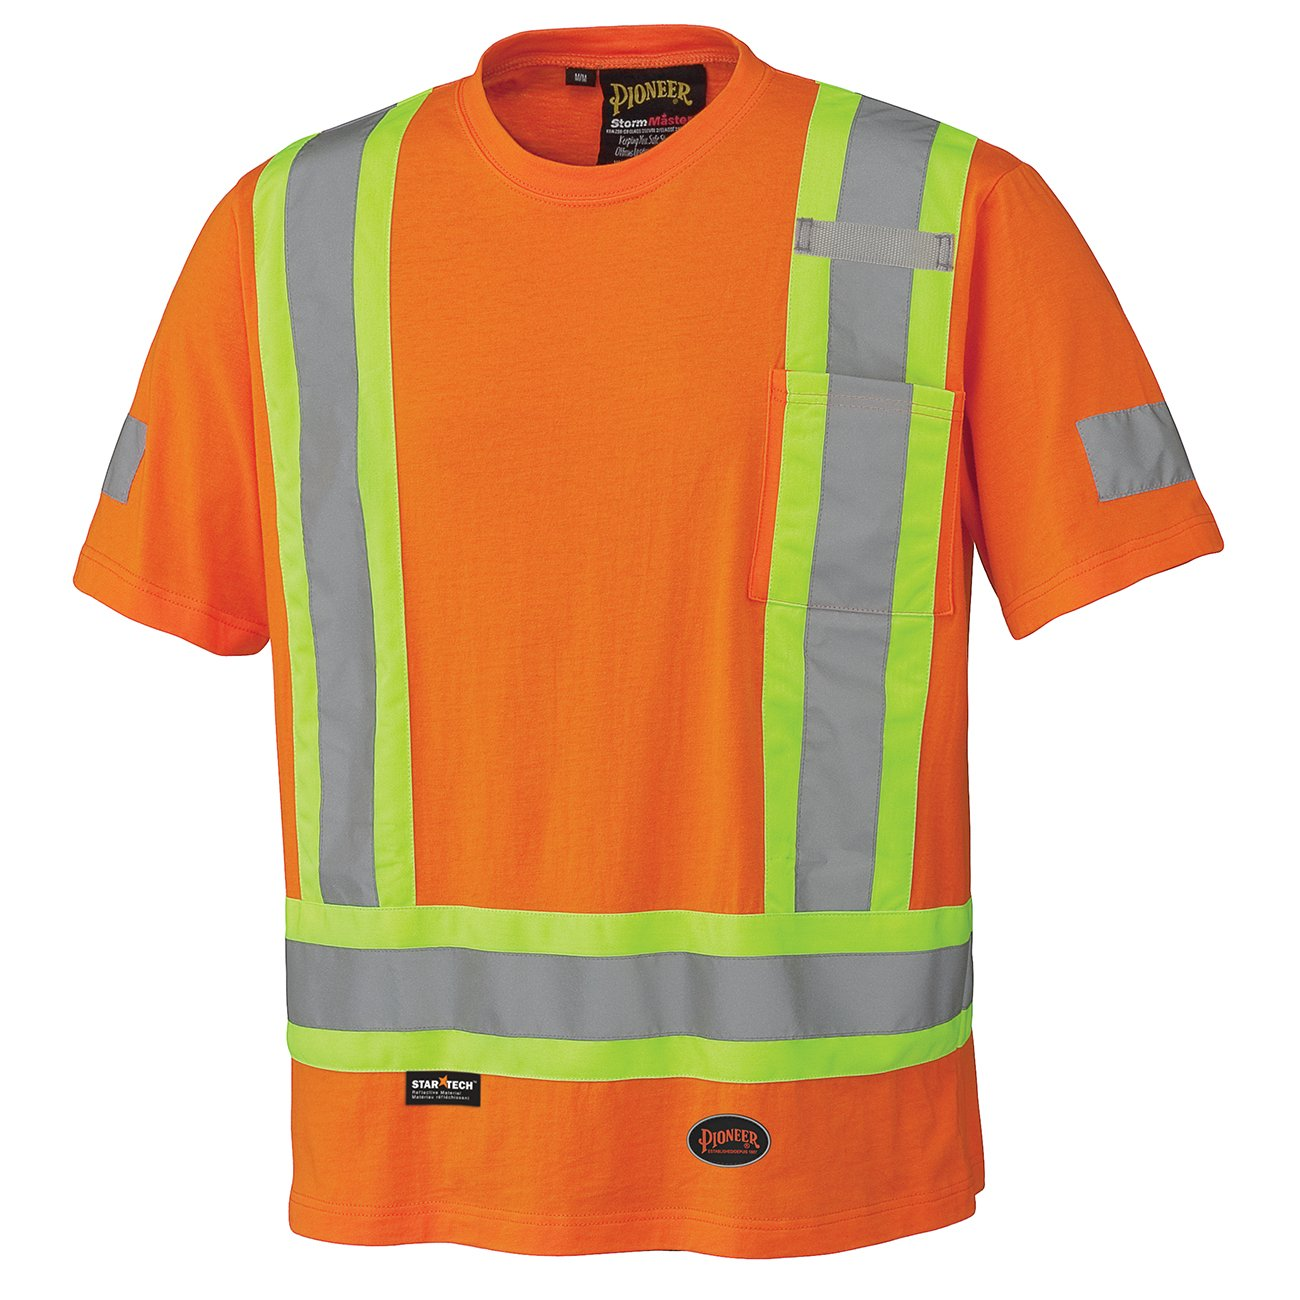 Pioneer V1050550-L 100% Cotton High Visibility Safety Work T-Shirt, Orange, L